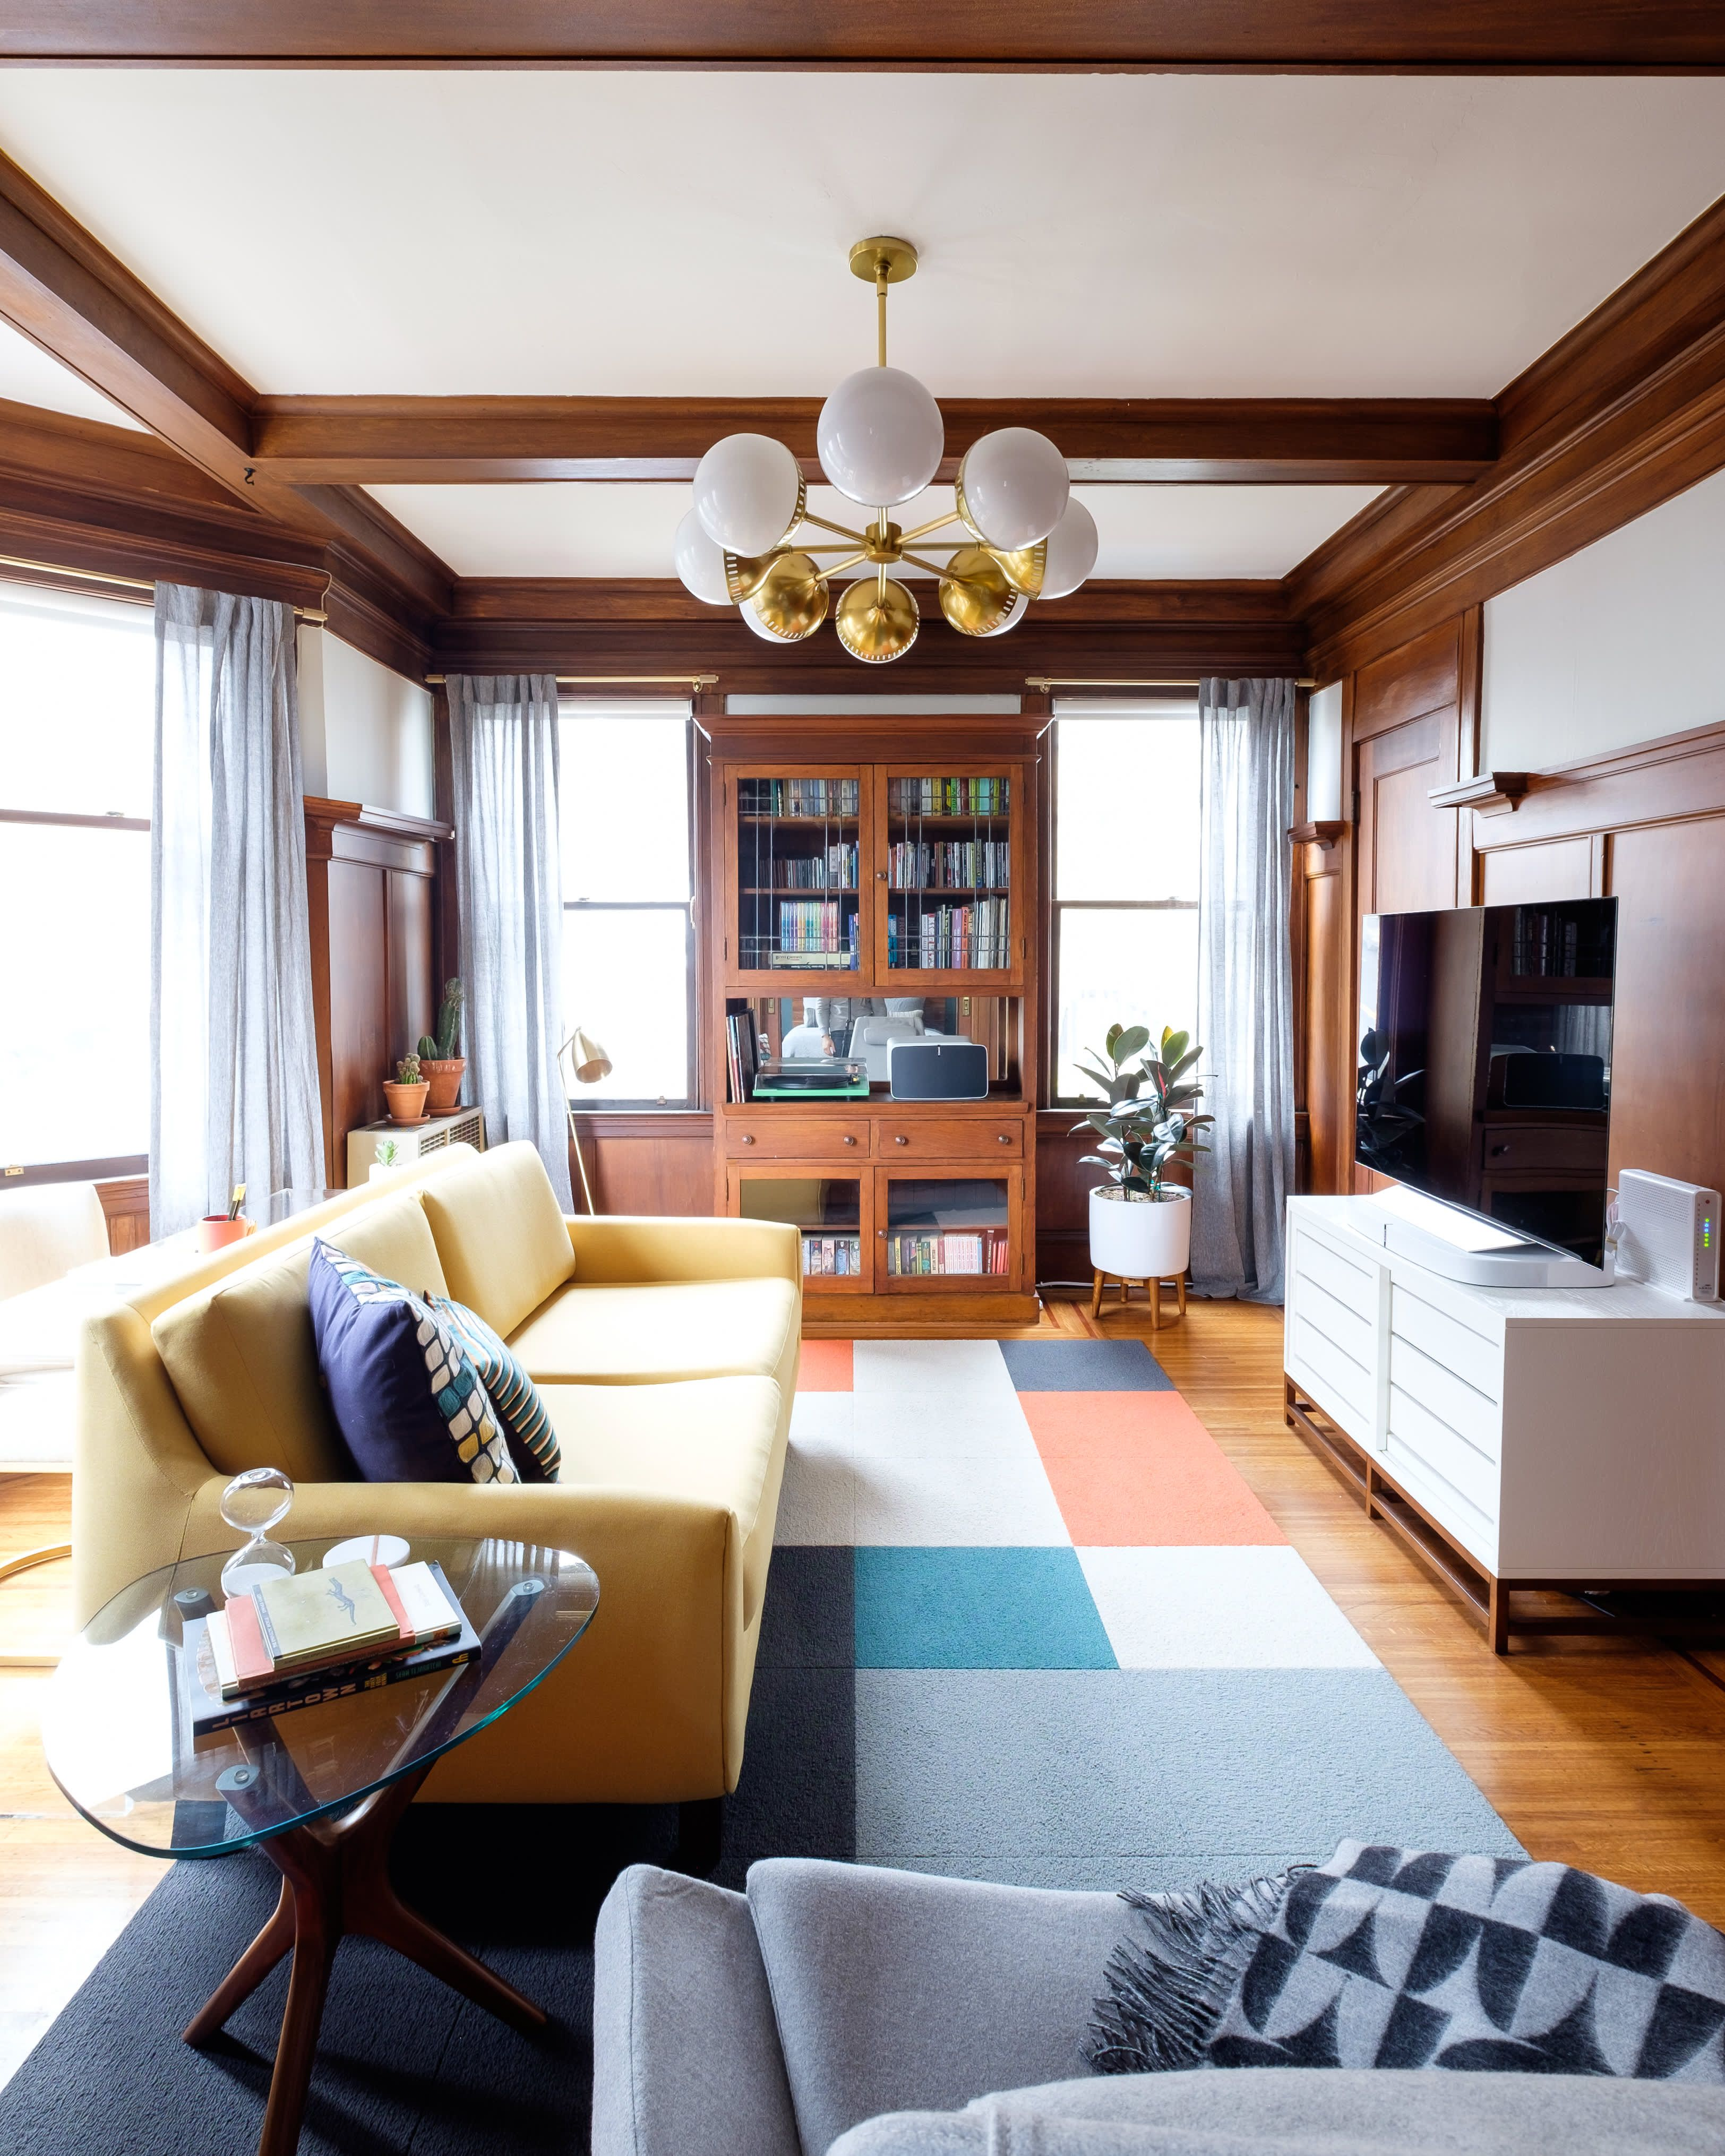 San Francisco Apartments For Rent: A Small San Francisco Rental Apartment Is Full Of Warmth